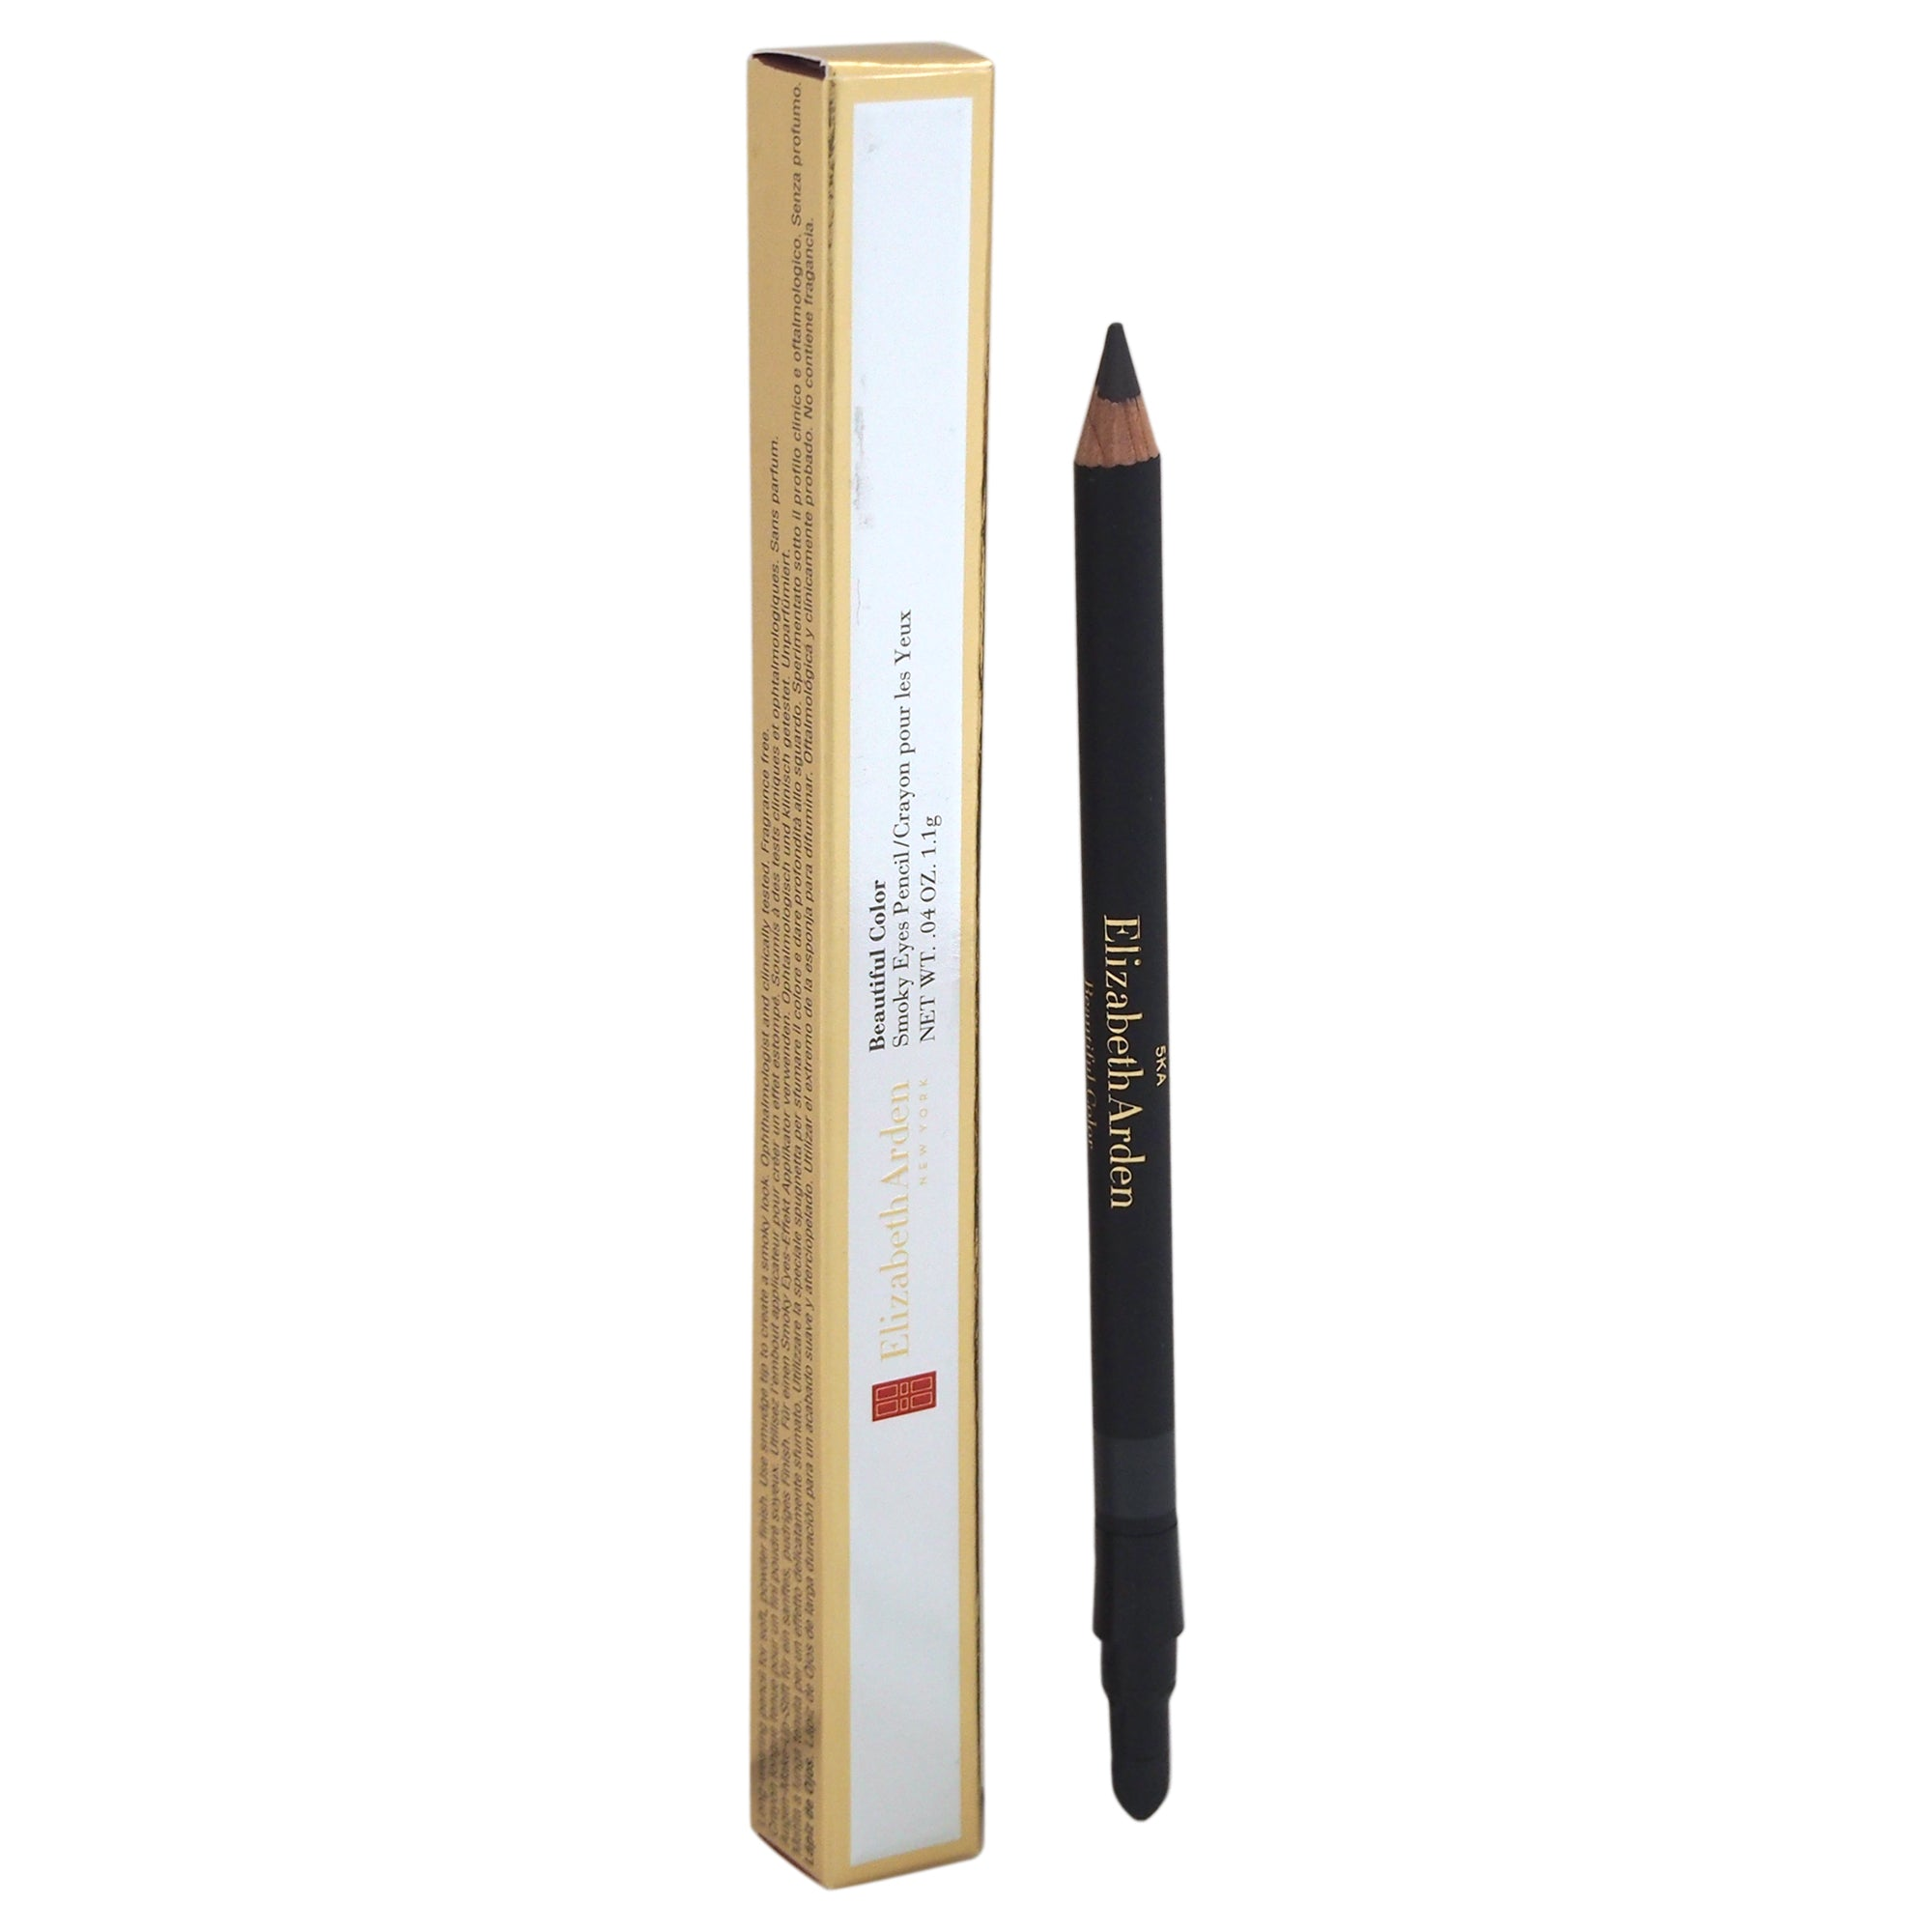 Elizabeth Arden Smoky Eyes Pencil in Gunmetal 02